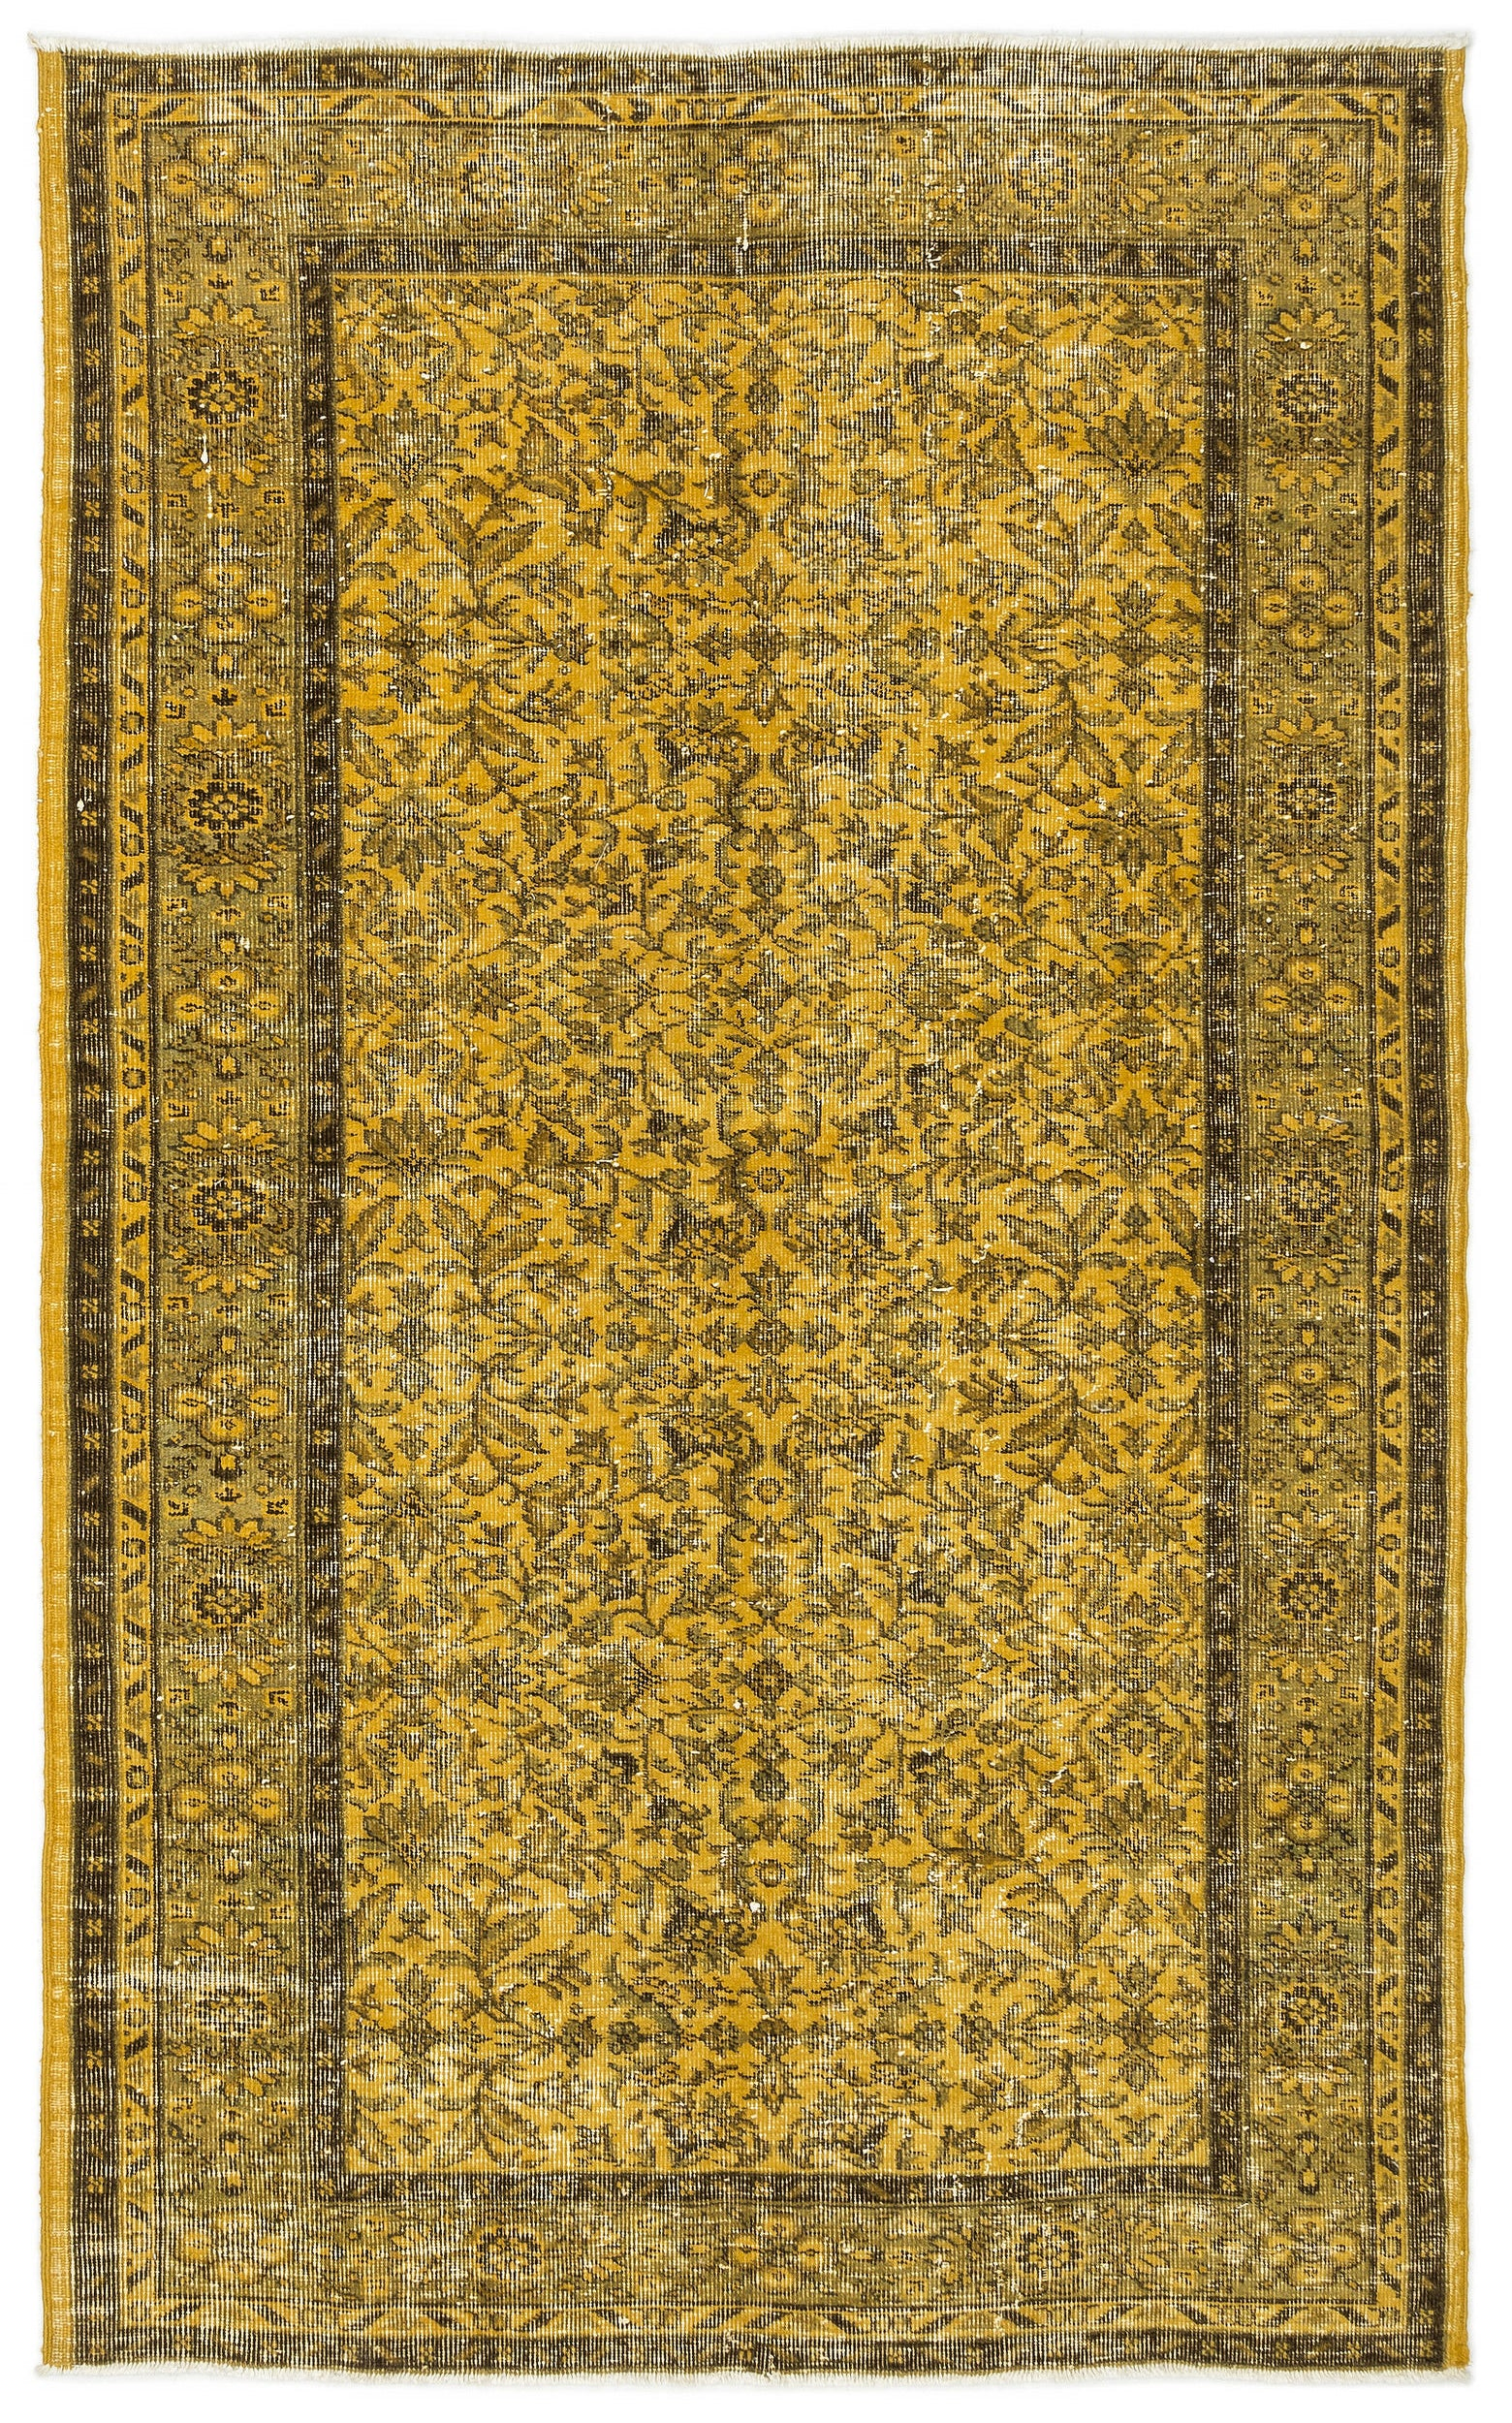 Yellow Over Dyed Vintage Rug 4'8'' x 7'7'' ft 141 x 232 cm